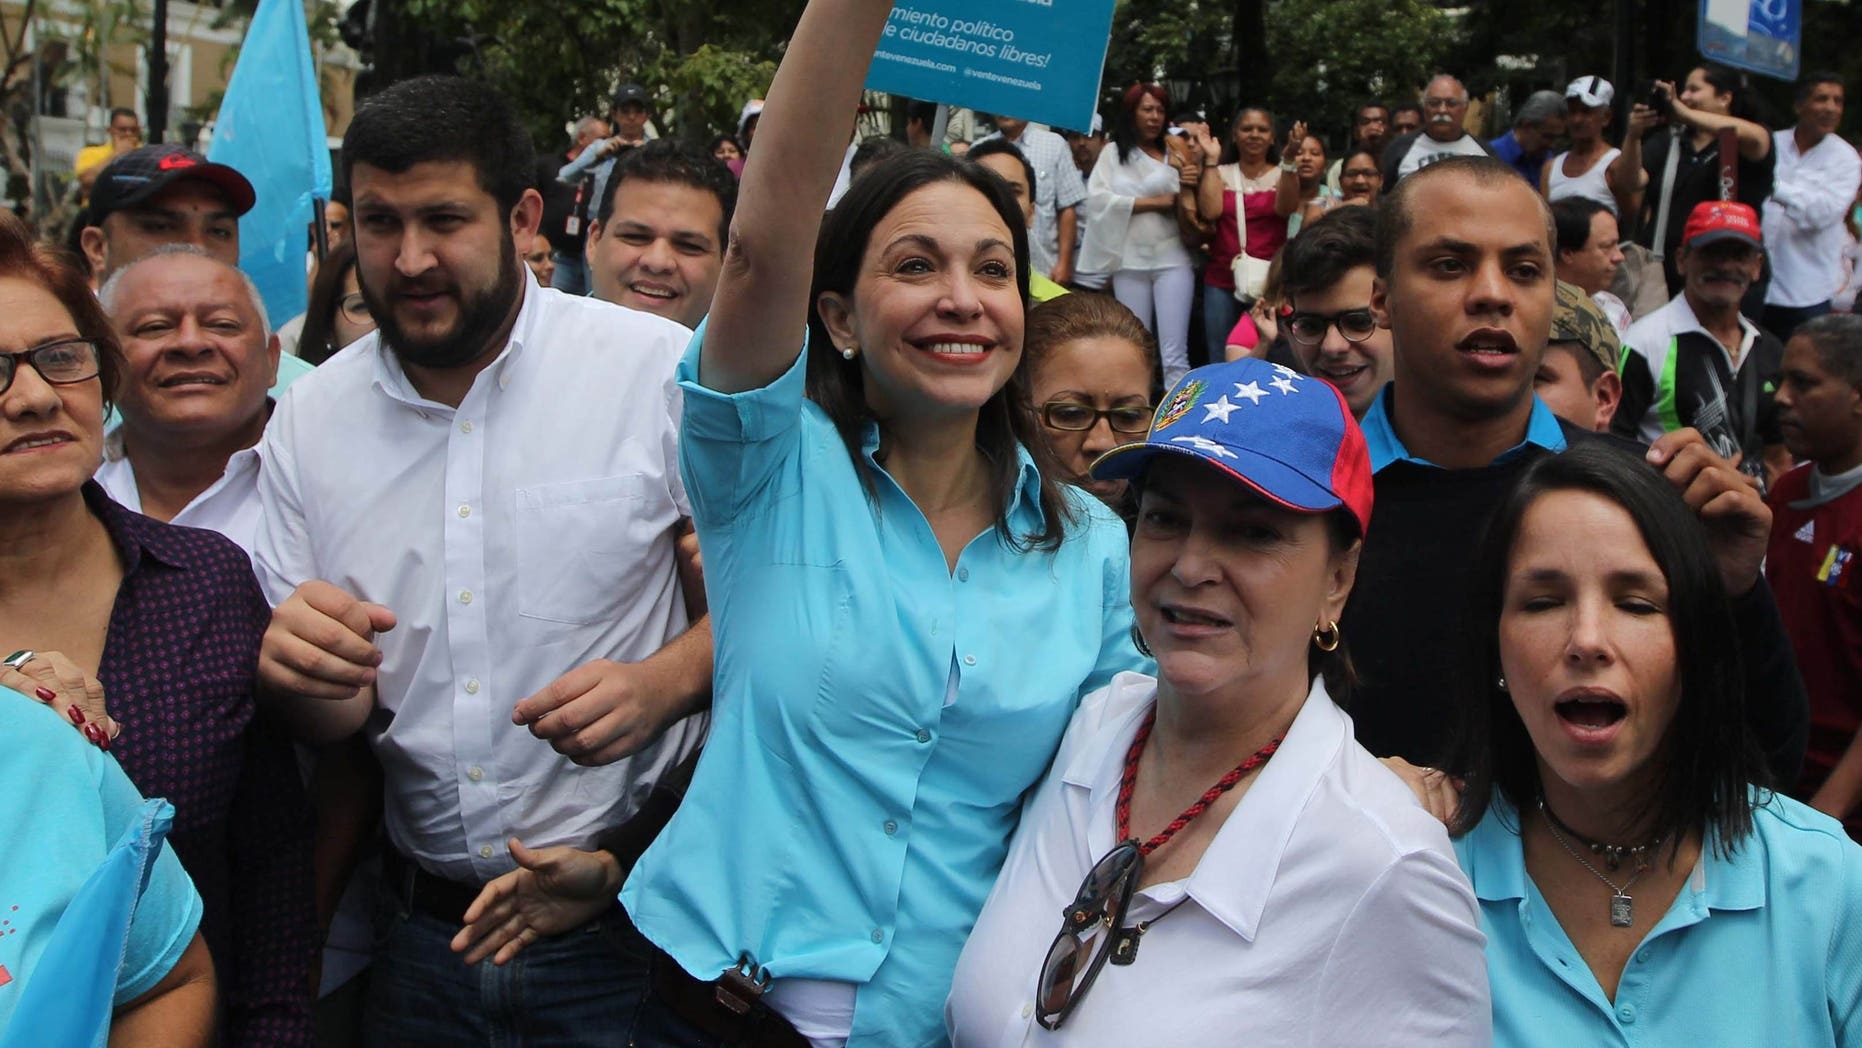 Monday, Aug. 3, 2015: Opposition leader Maria Corina Machado waves as she and her supporters arrive to the National Electoral Council (CNE) with the intention of registering her candidacy for congressional elections in Los Teques, Venezuela.